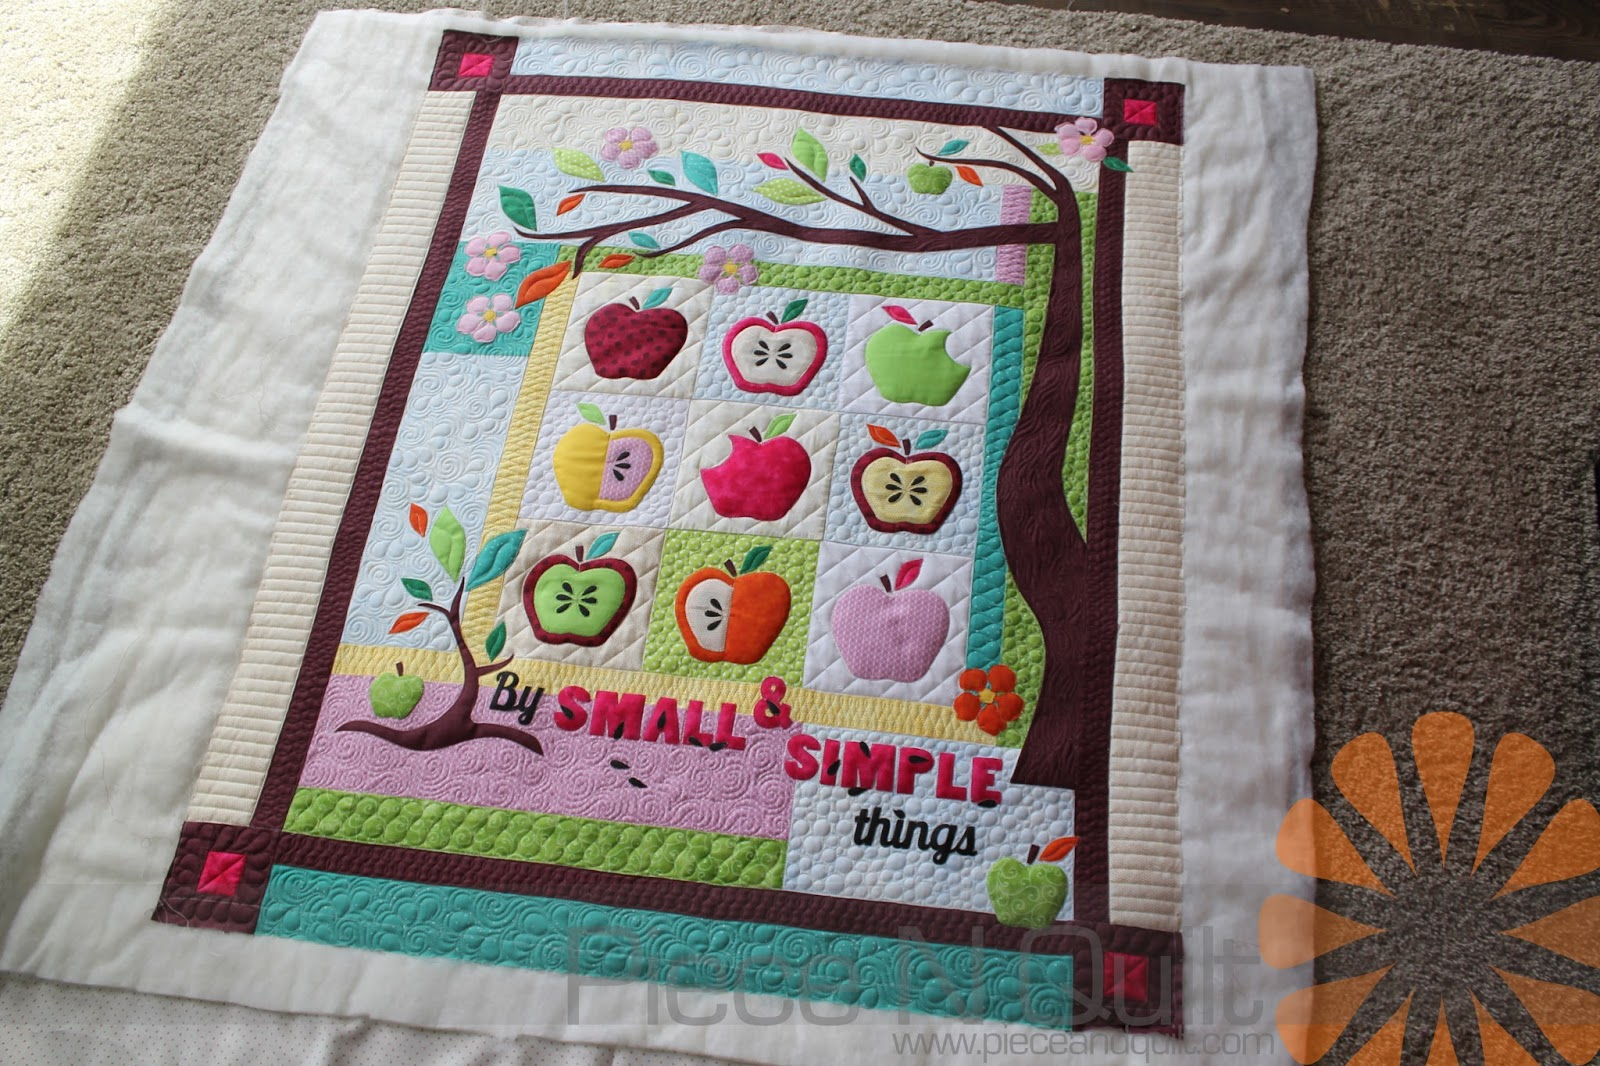 Piece n quilt: by small & simple things custom machine quilting by